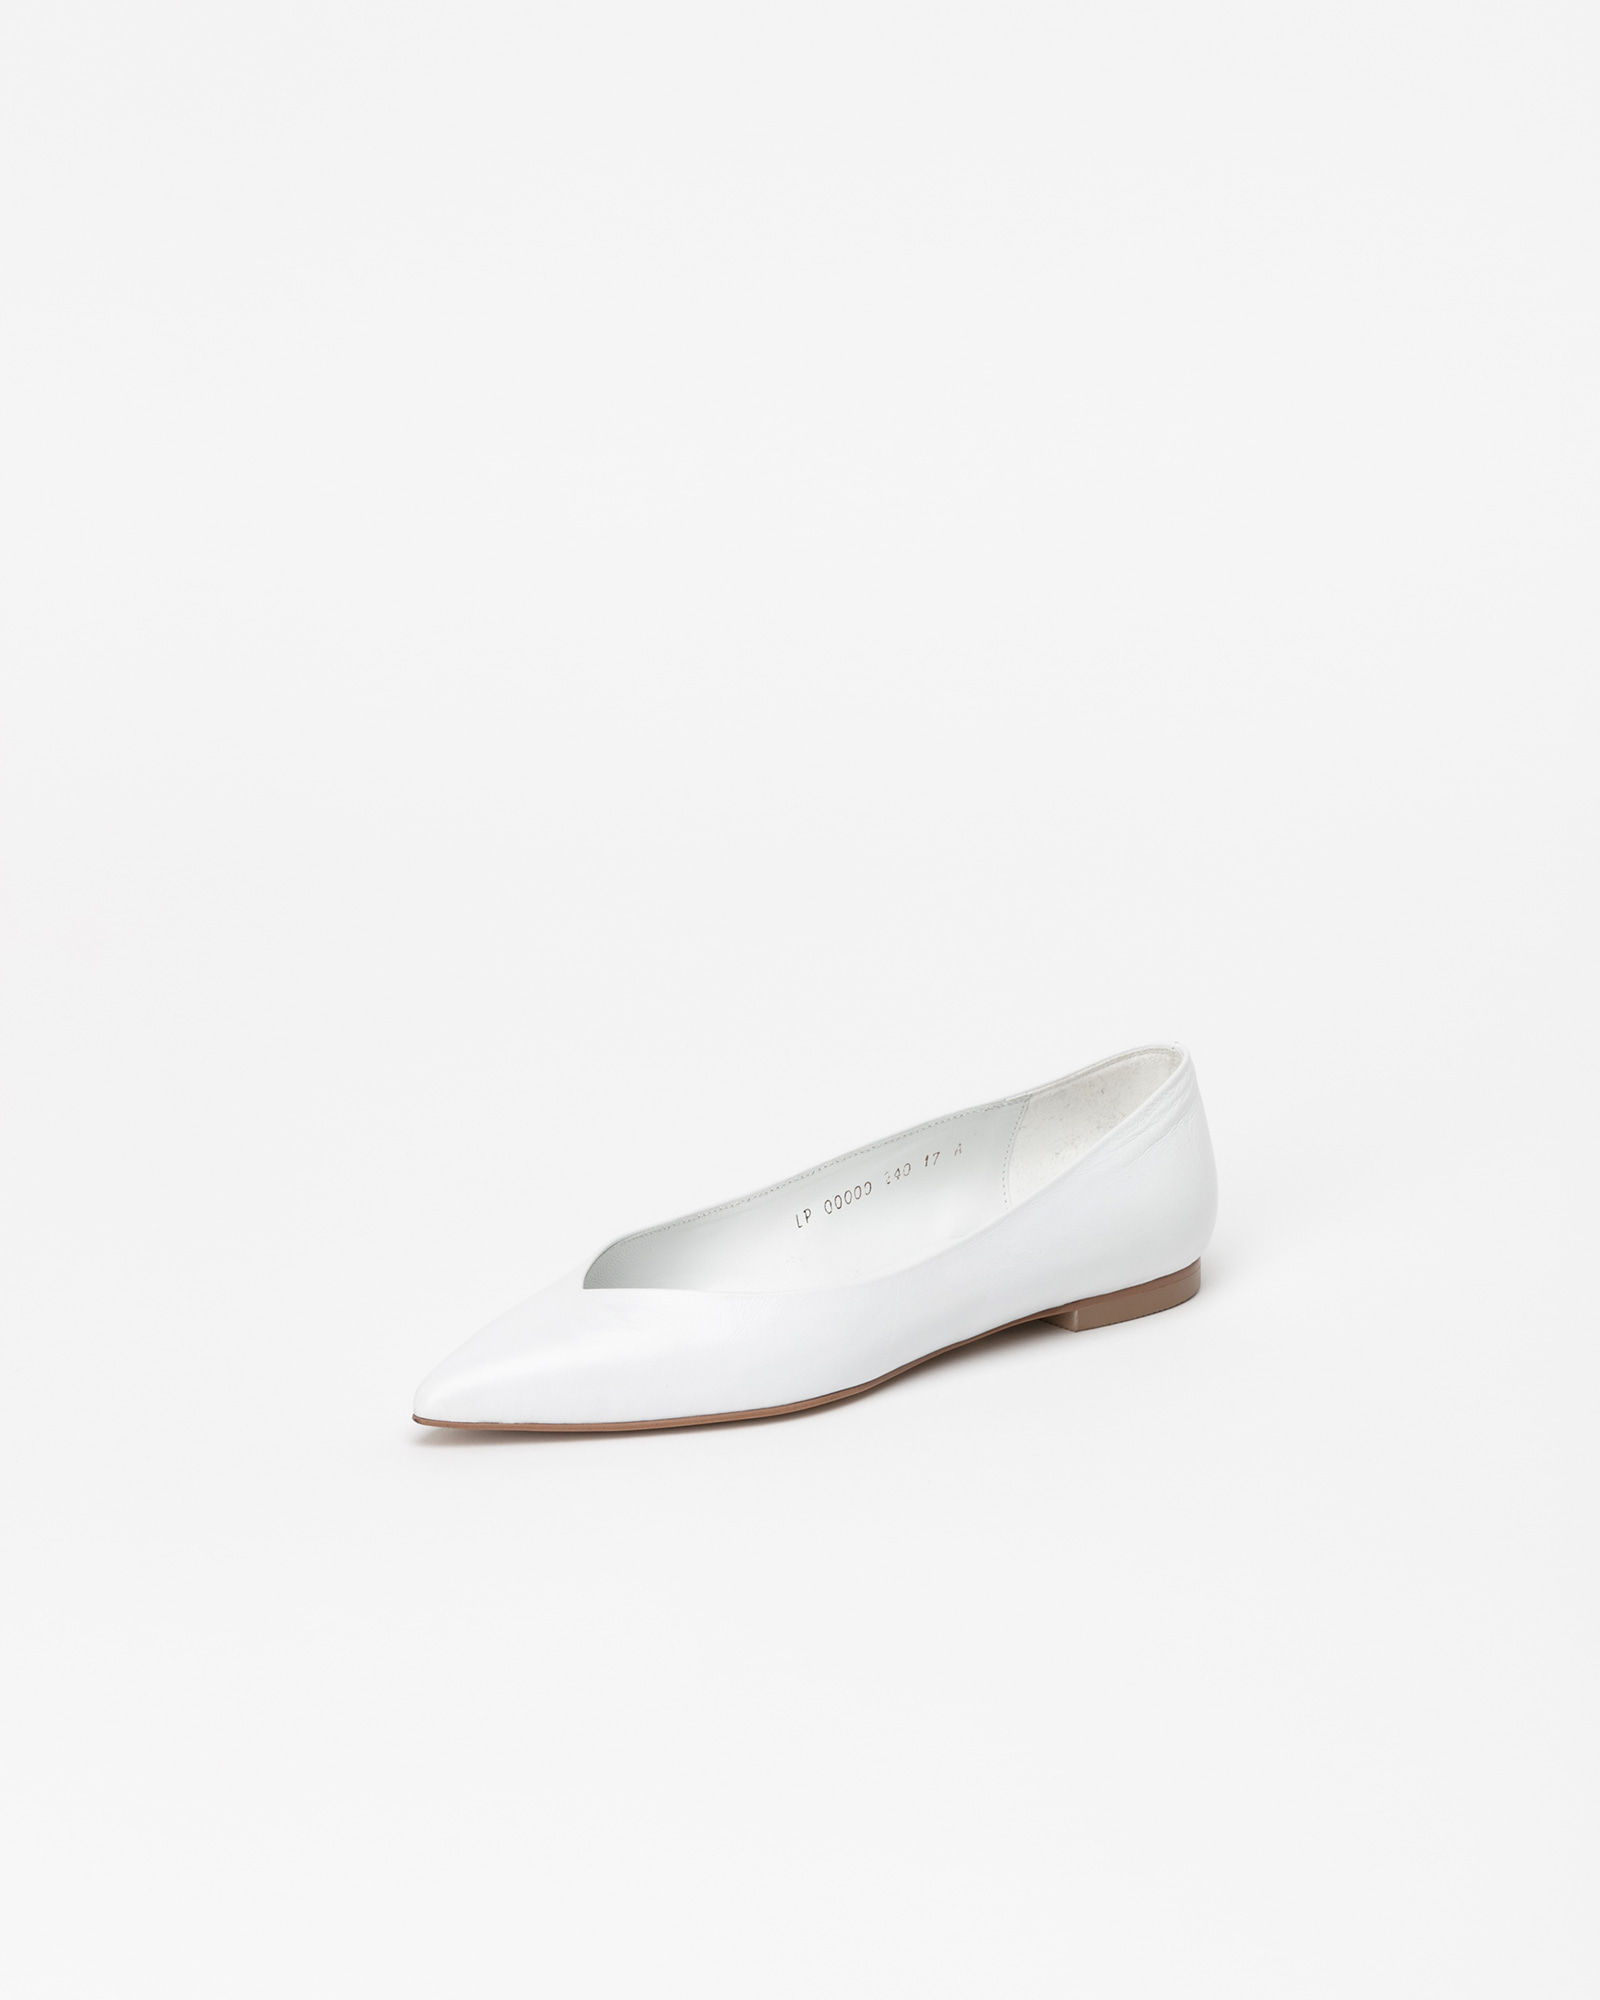 Preta Flat Shoes in Wrinkled White